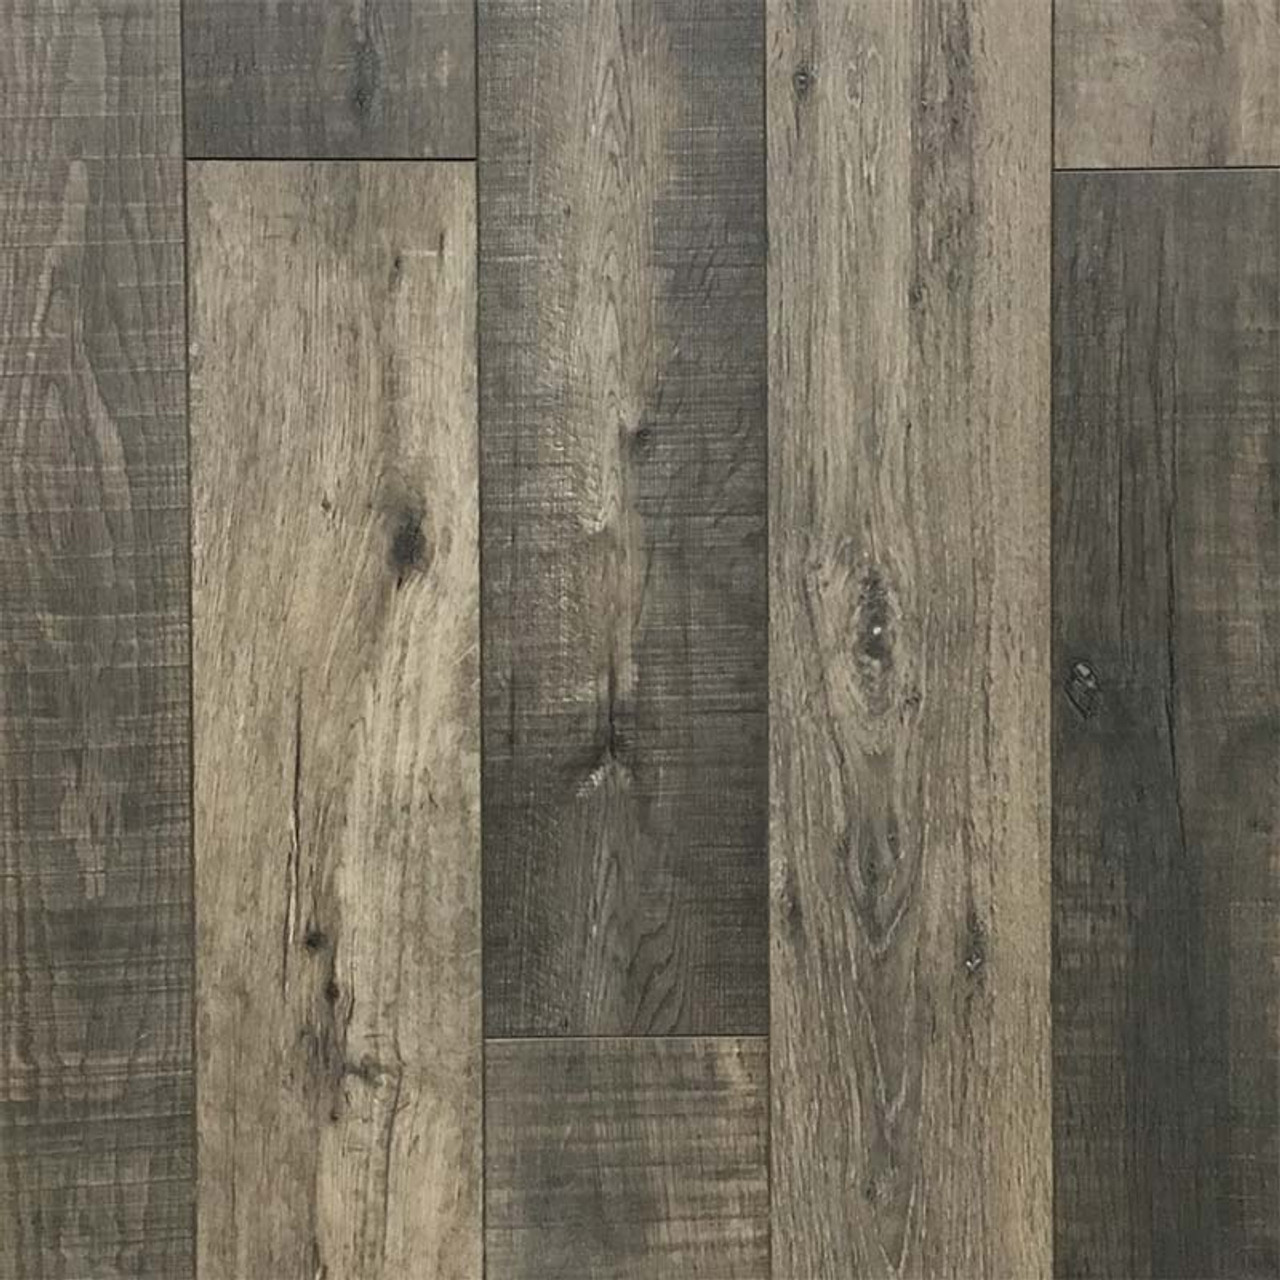 12MM Shadow Pine Laminate Flooring | Attached Underpad | 11.63 Sq.Ft. Per Box | Sold by the Box